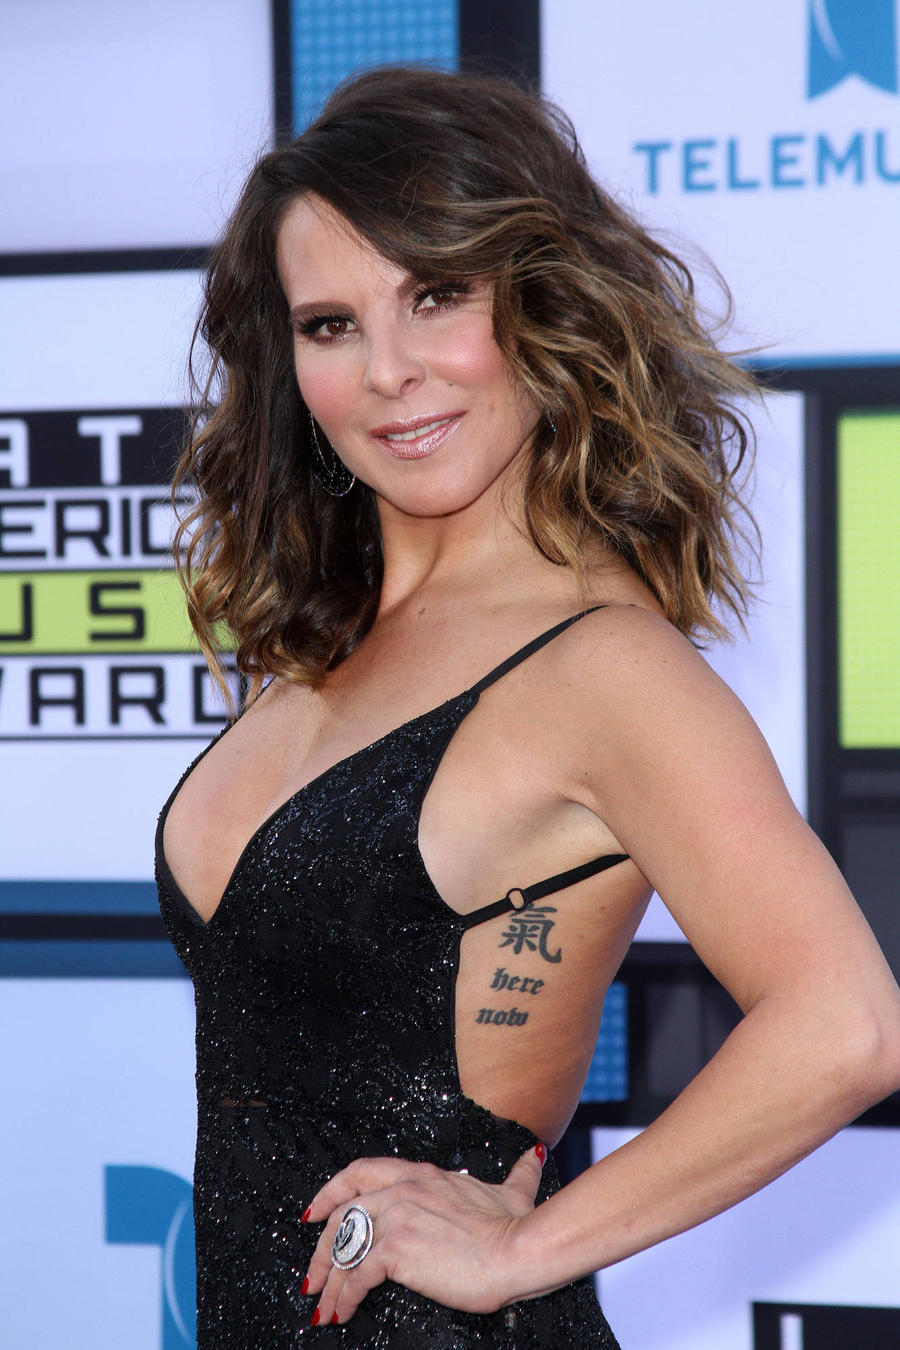 Kate del Castillo naked (22 photos), Sexy, Paparazzi, Boobs, cleavage 2018